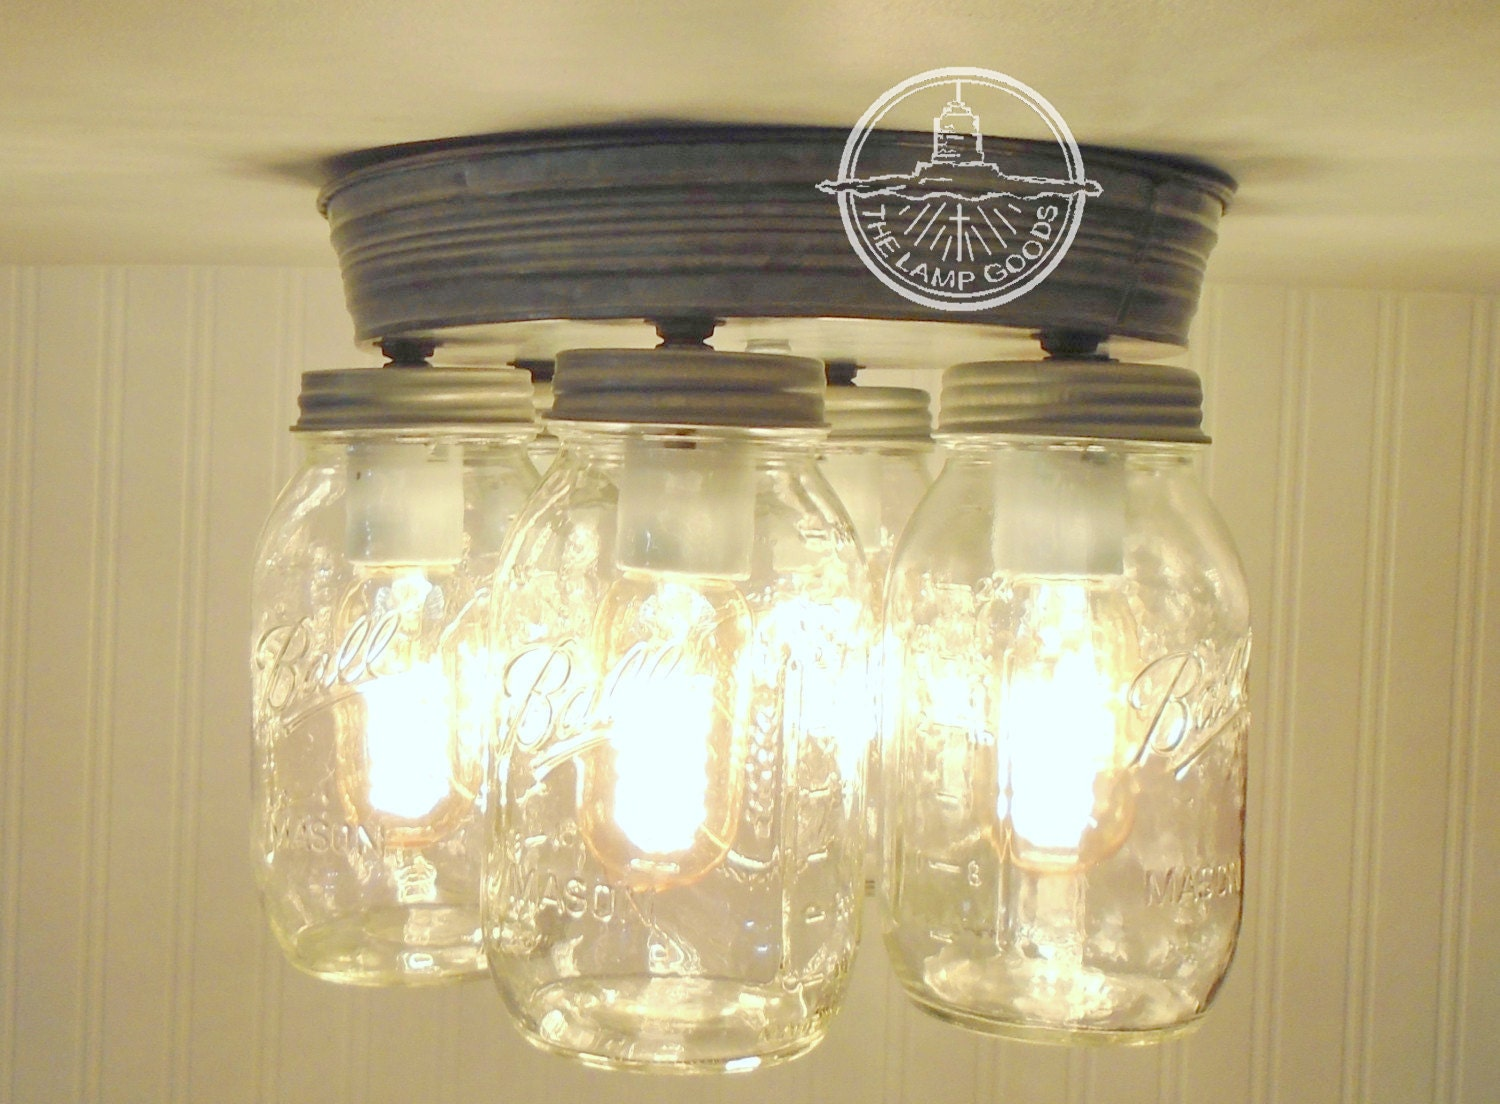 rustic mason jar ceiling light fixture new quarts flush mount. Black Bedroom Furniture Sets. Home Design Ideas